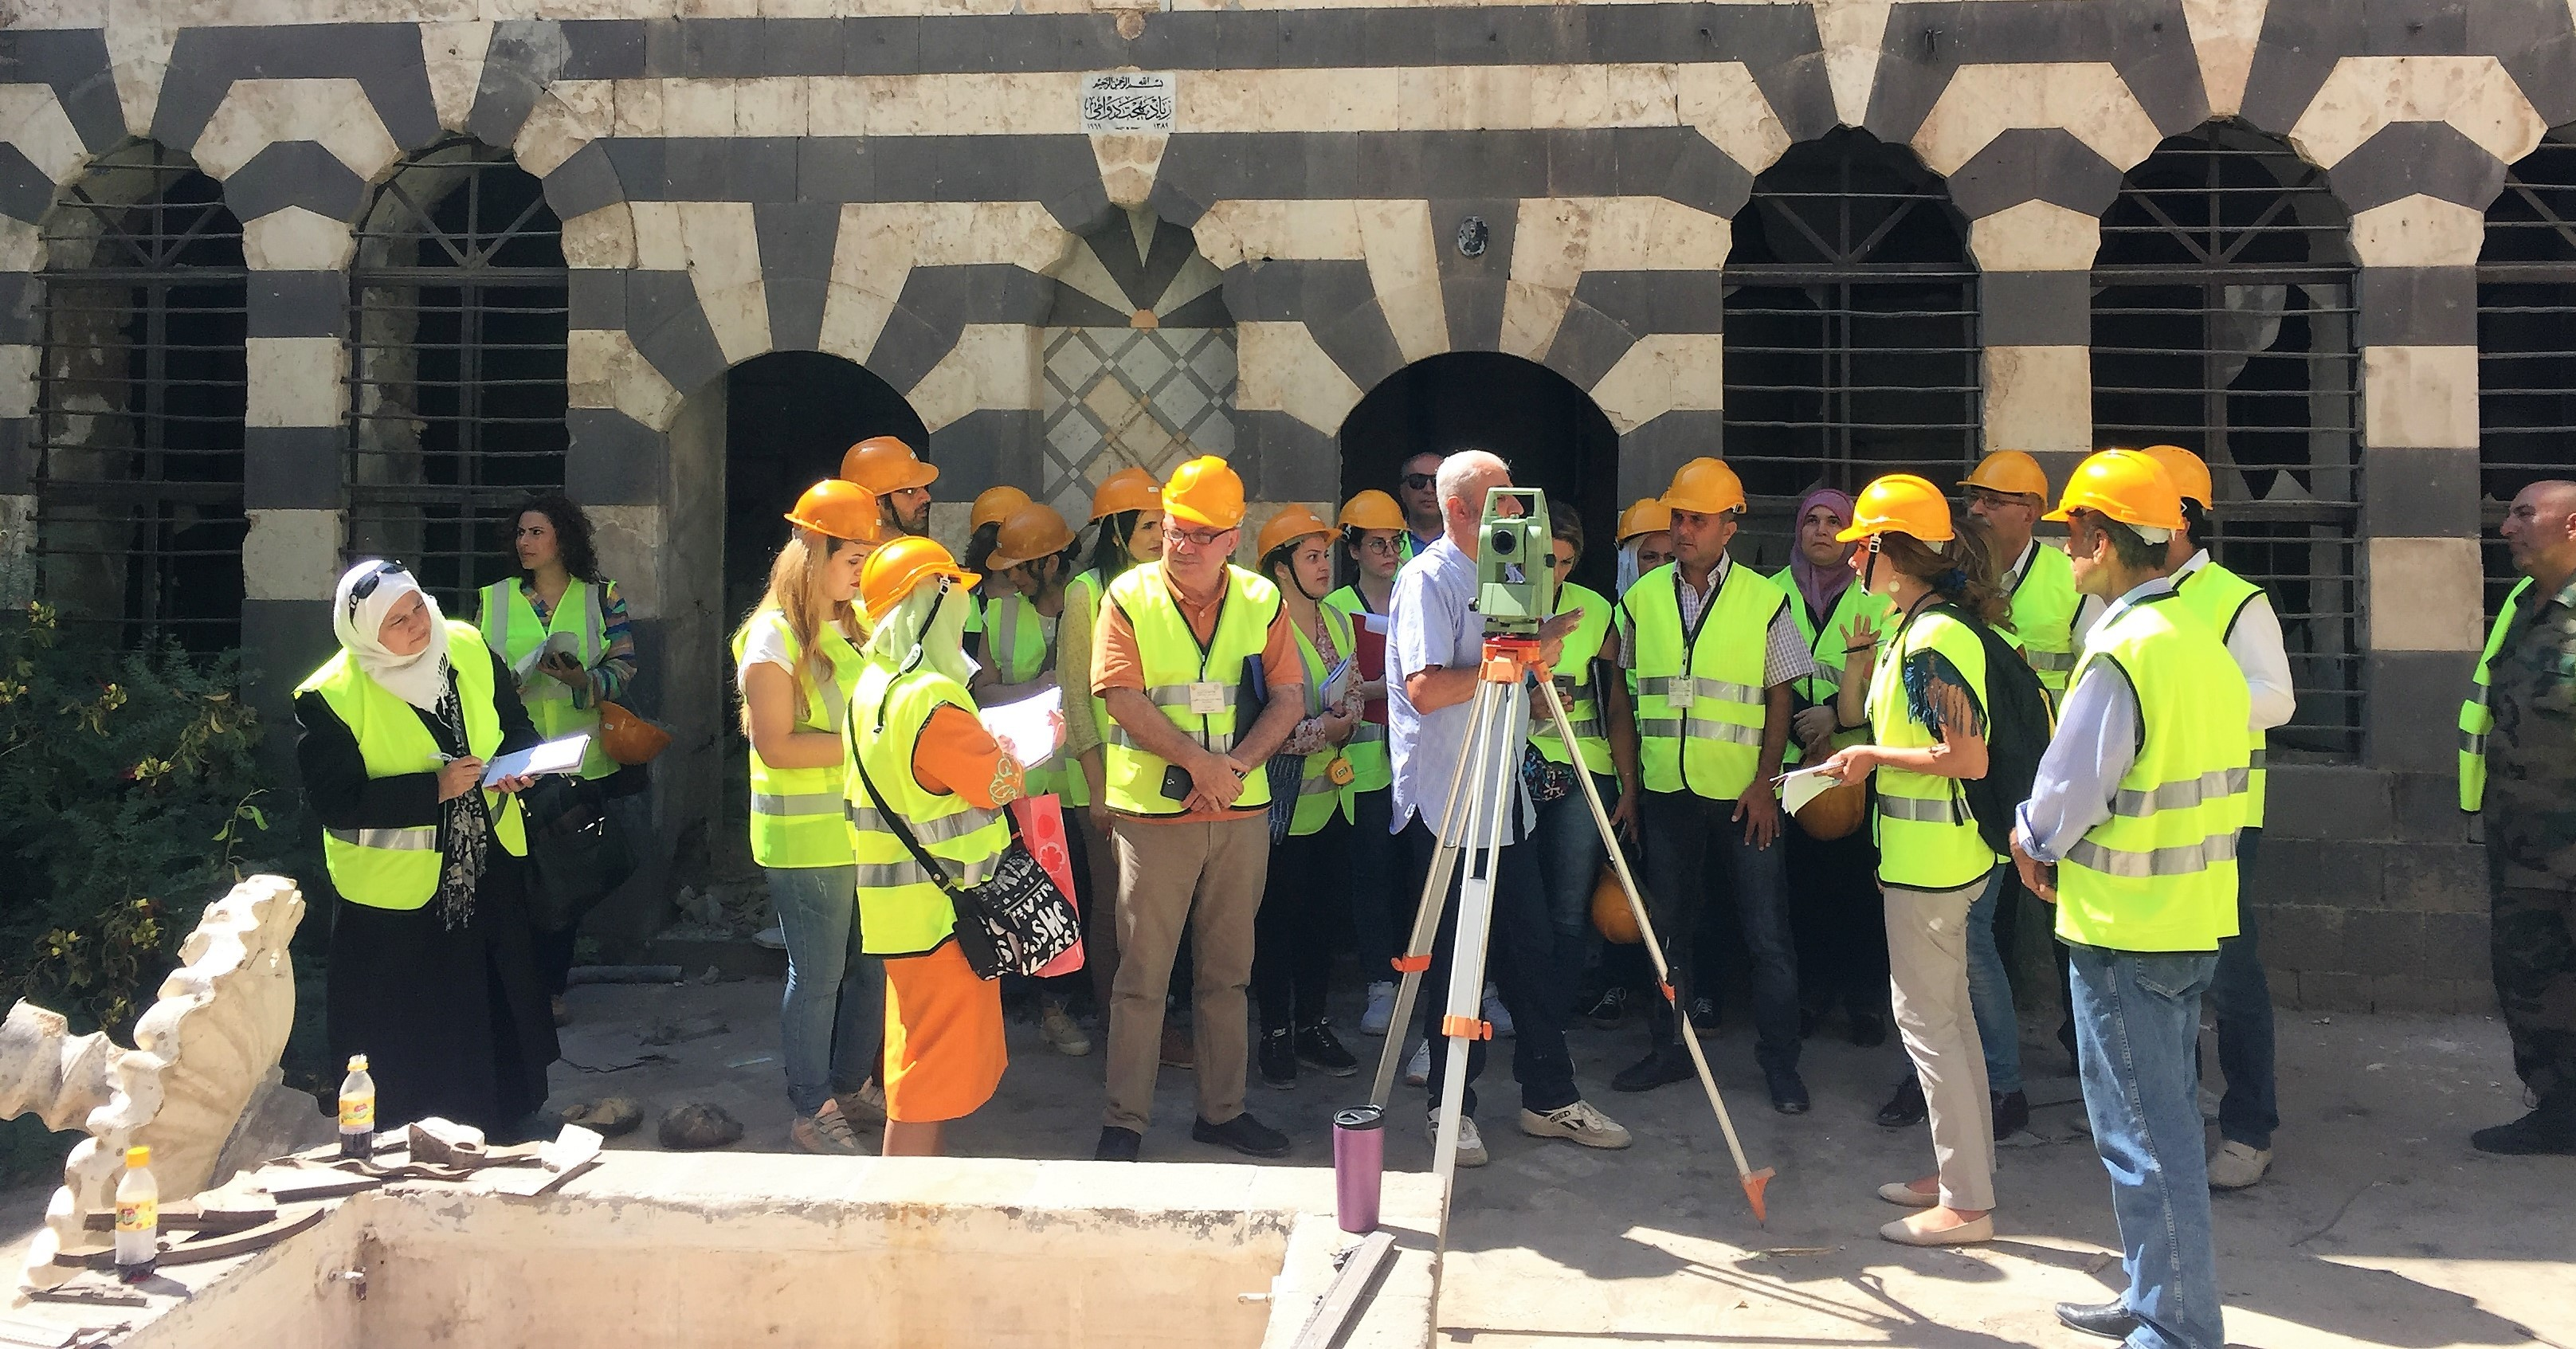 Day5 The Participants Learned Basic Skills On How To Use The Total Station Tool For Documentations2